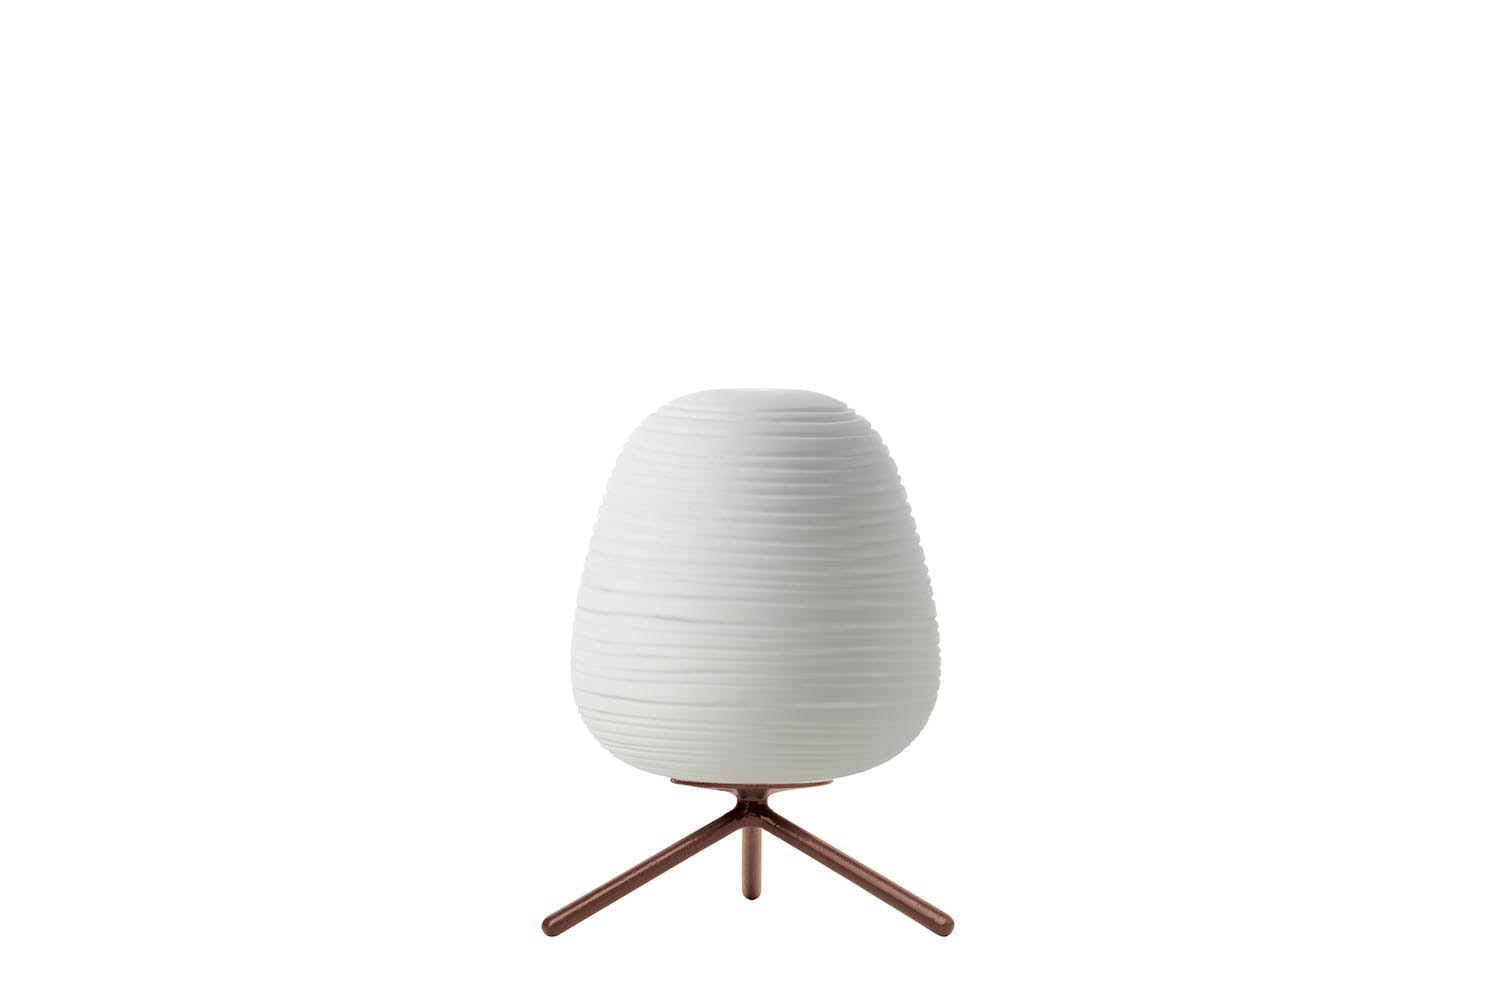 Rituals 3 Table Lamp by Ludovica & Roberto Palomba for Foscarini